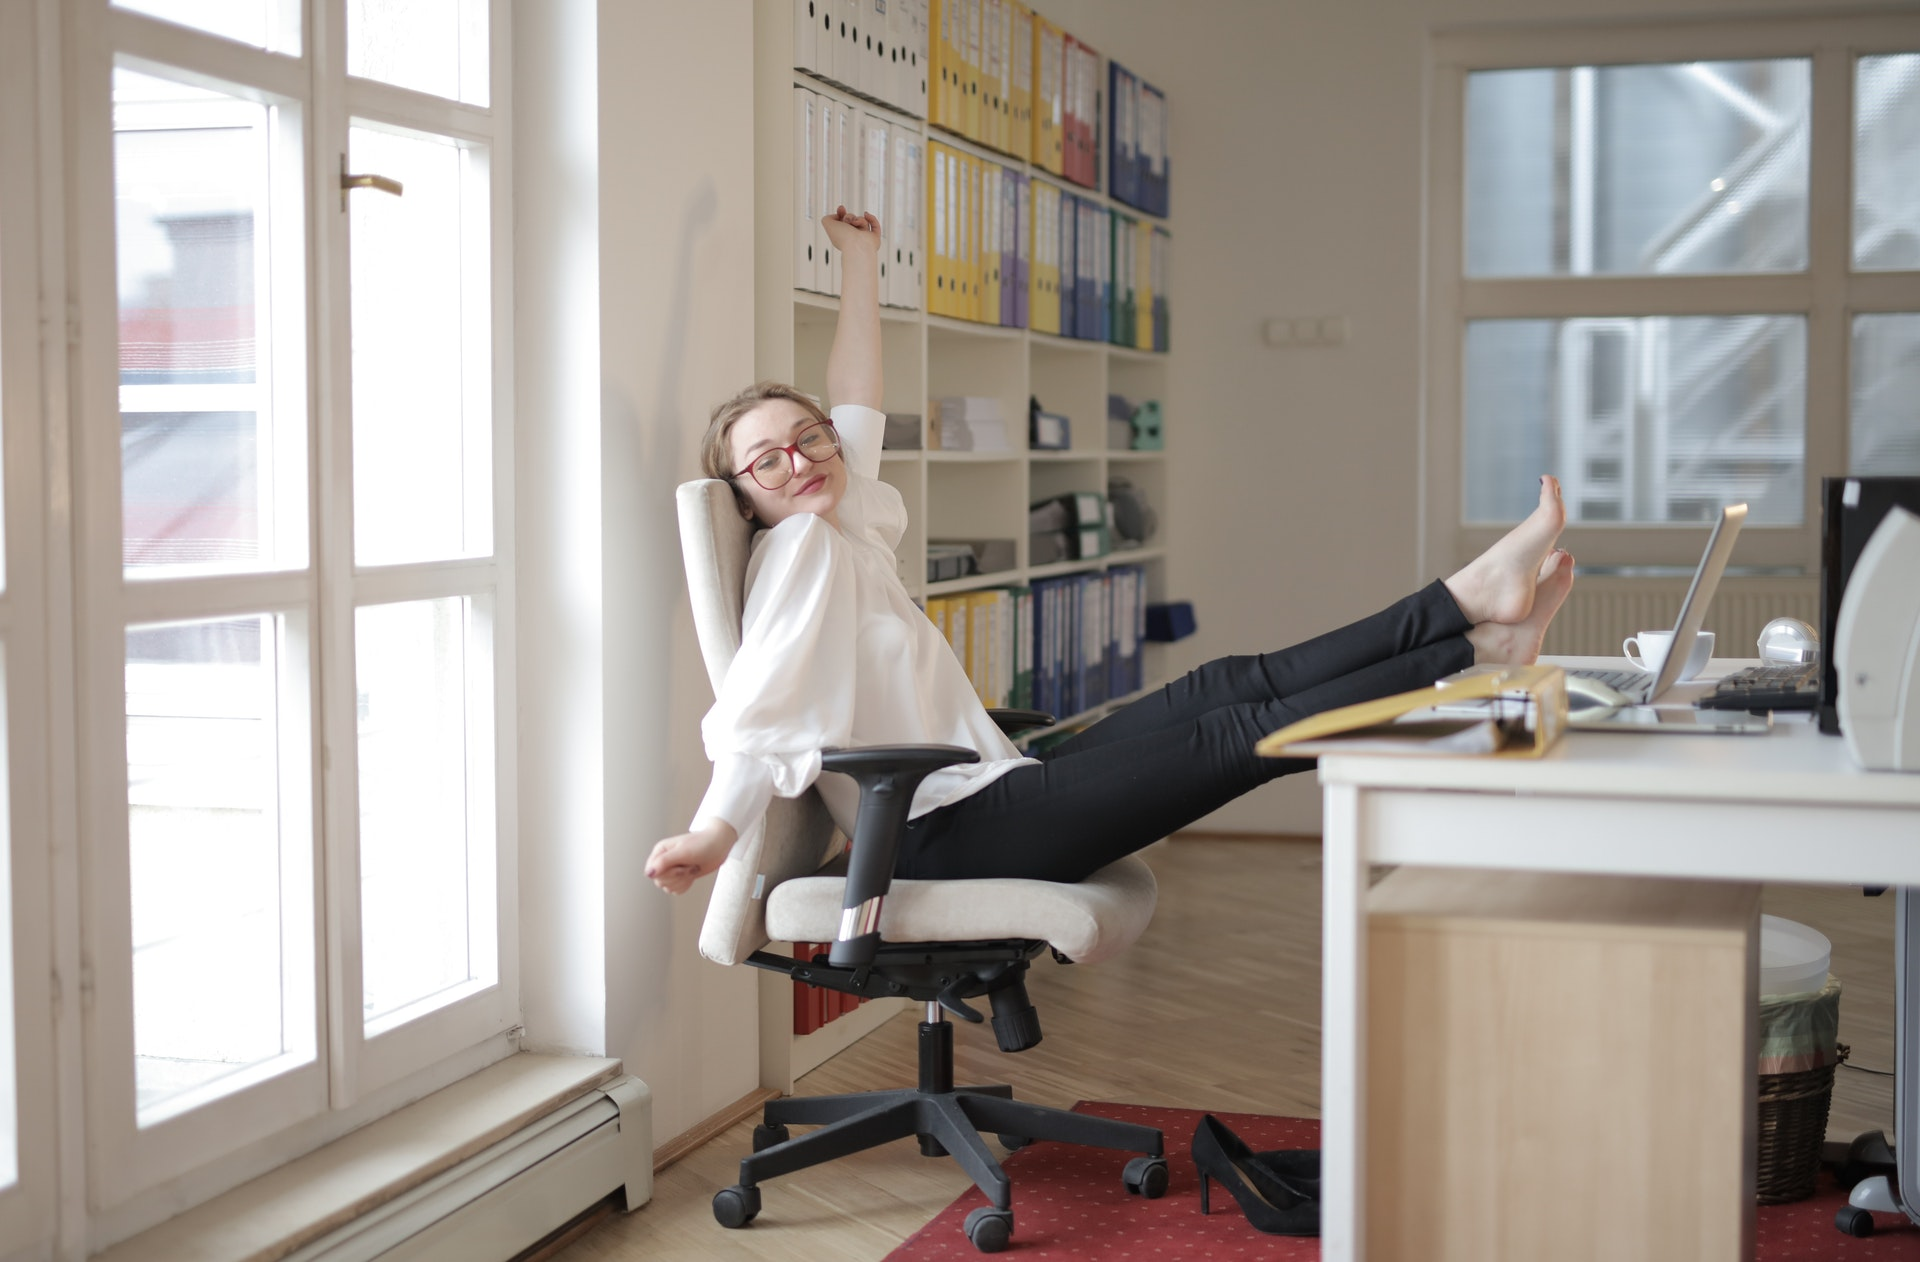 5 Stretches You Can do at Your Desk